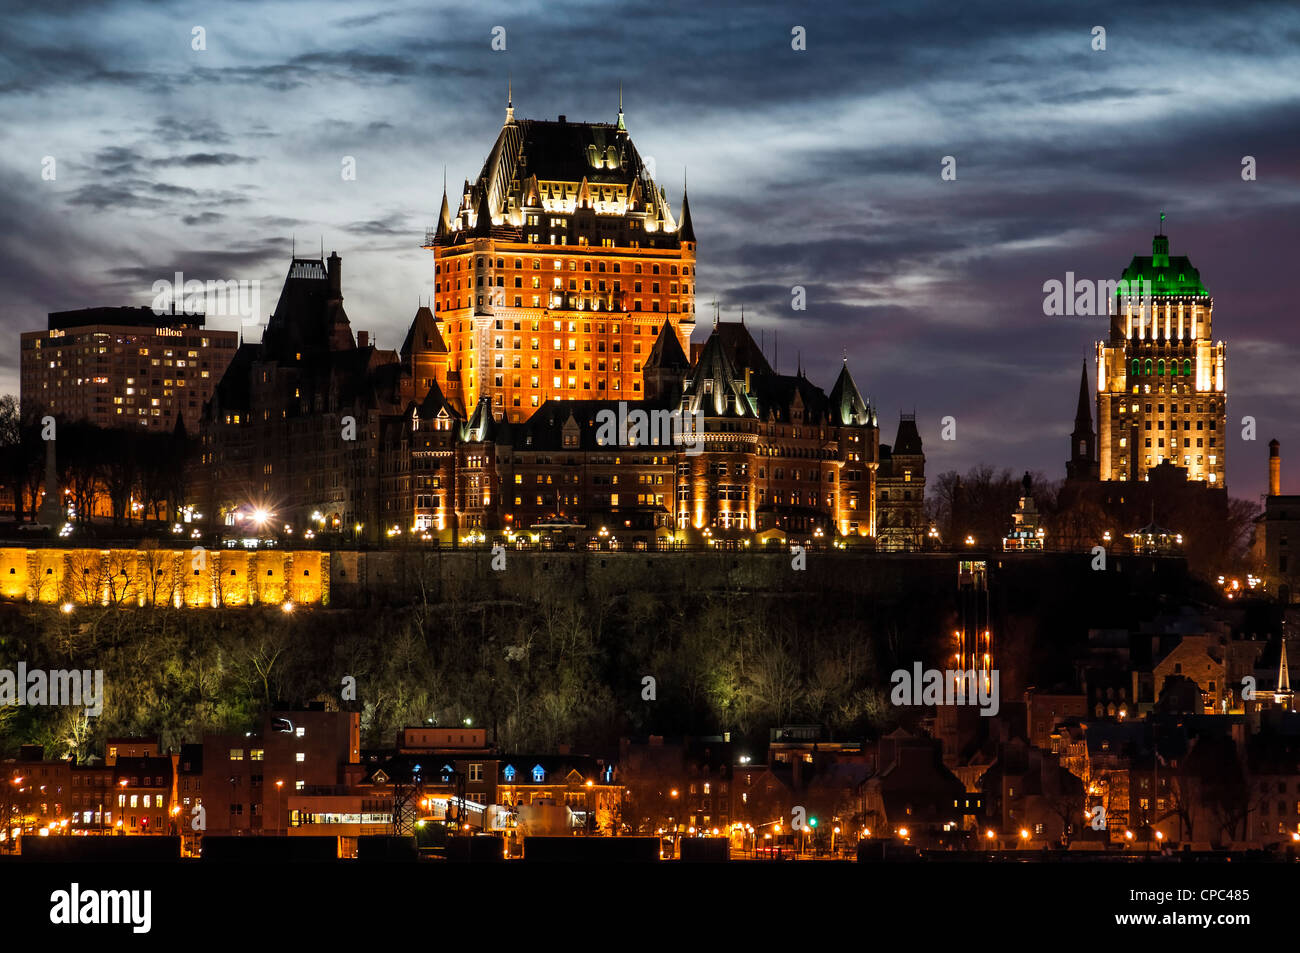 Chateau Frontenac and Old Quebec skyline at dusk from across the Saint Lawrence River in Levis, Quebec, Canada. - Stock Image